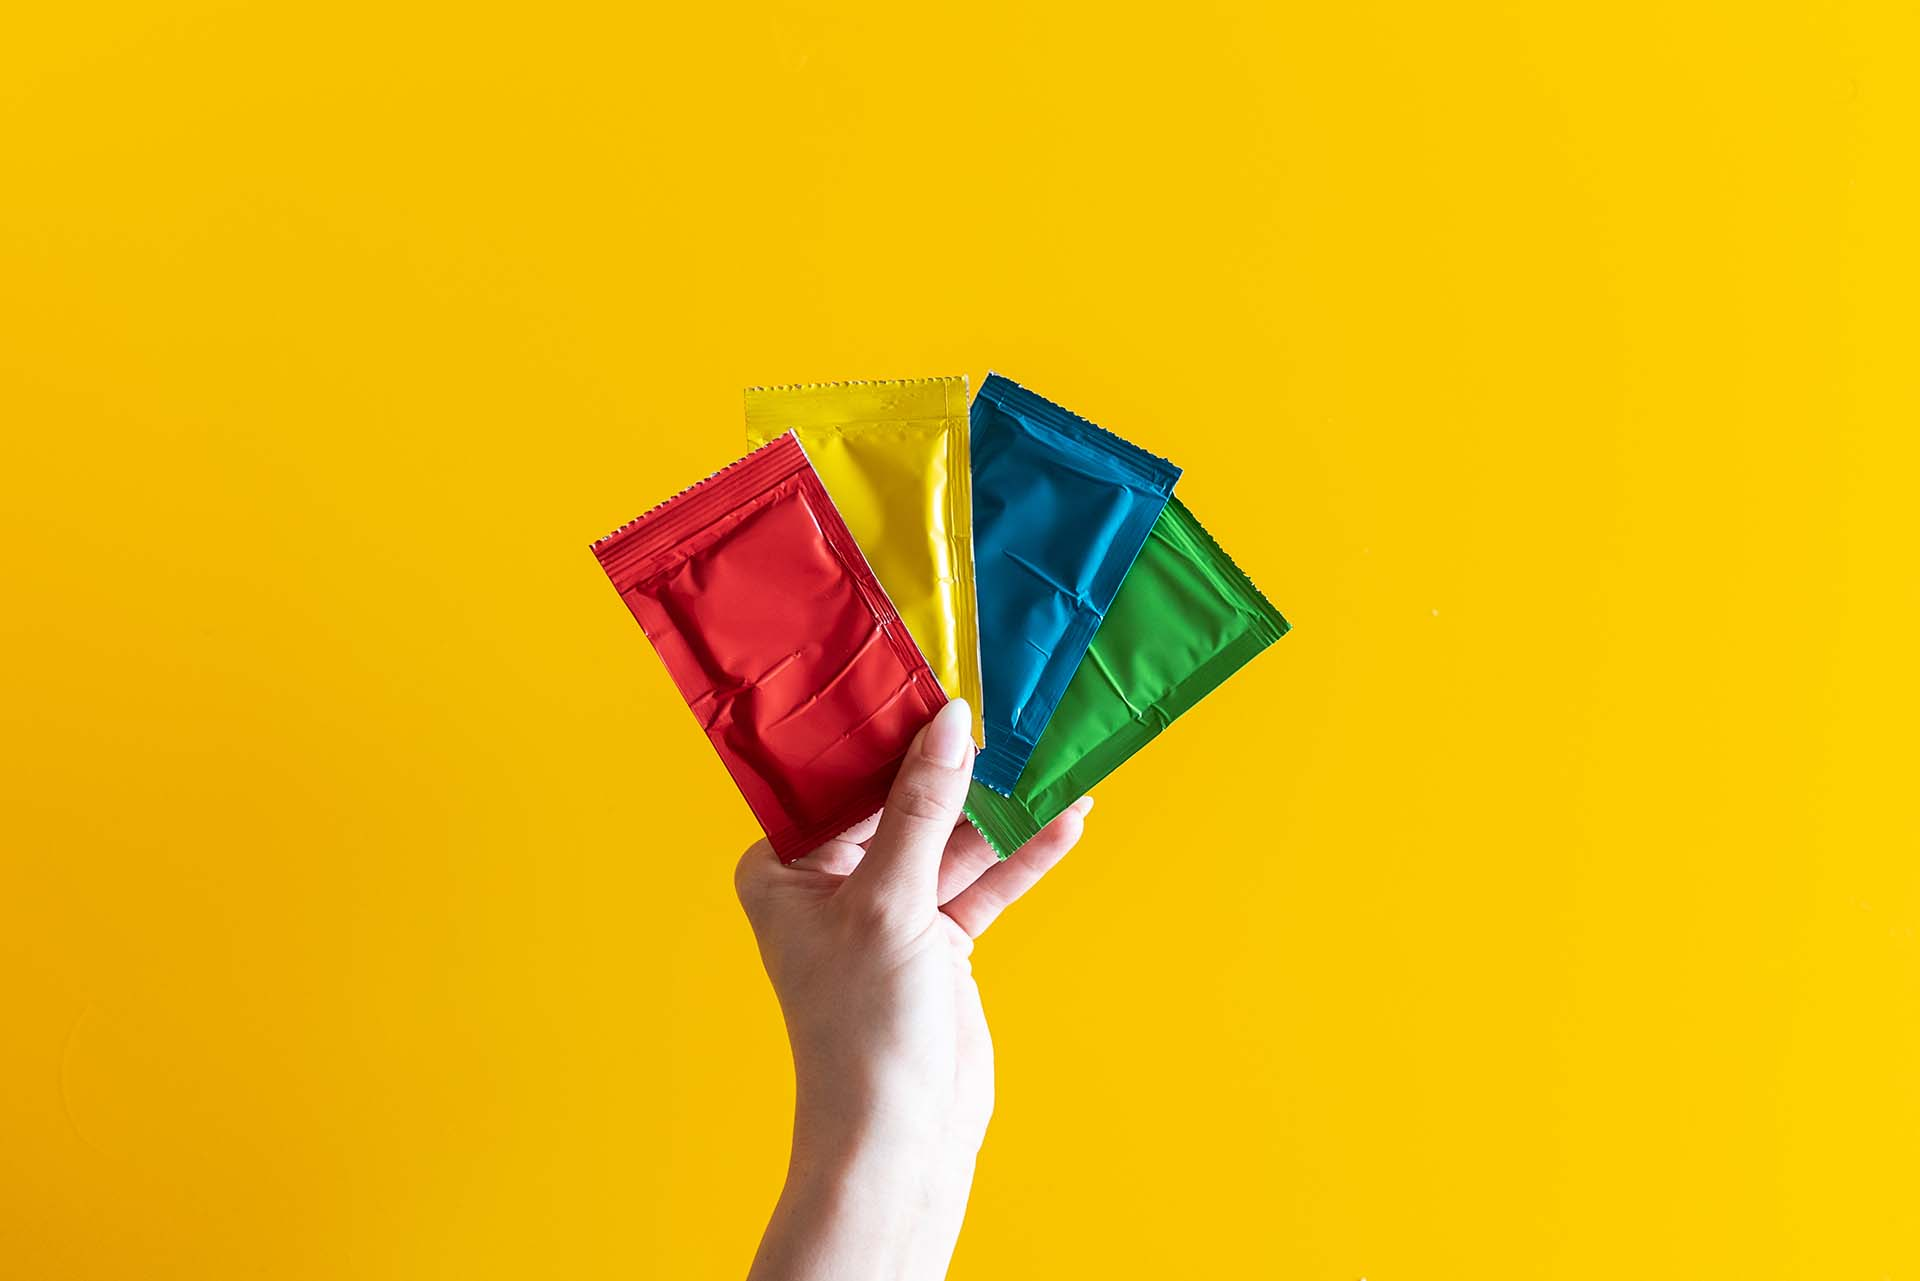 A hand holding four different color pouches of food colors in front of a bright yellow wall.